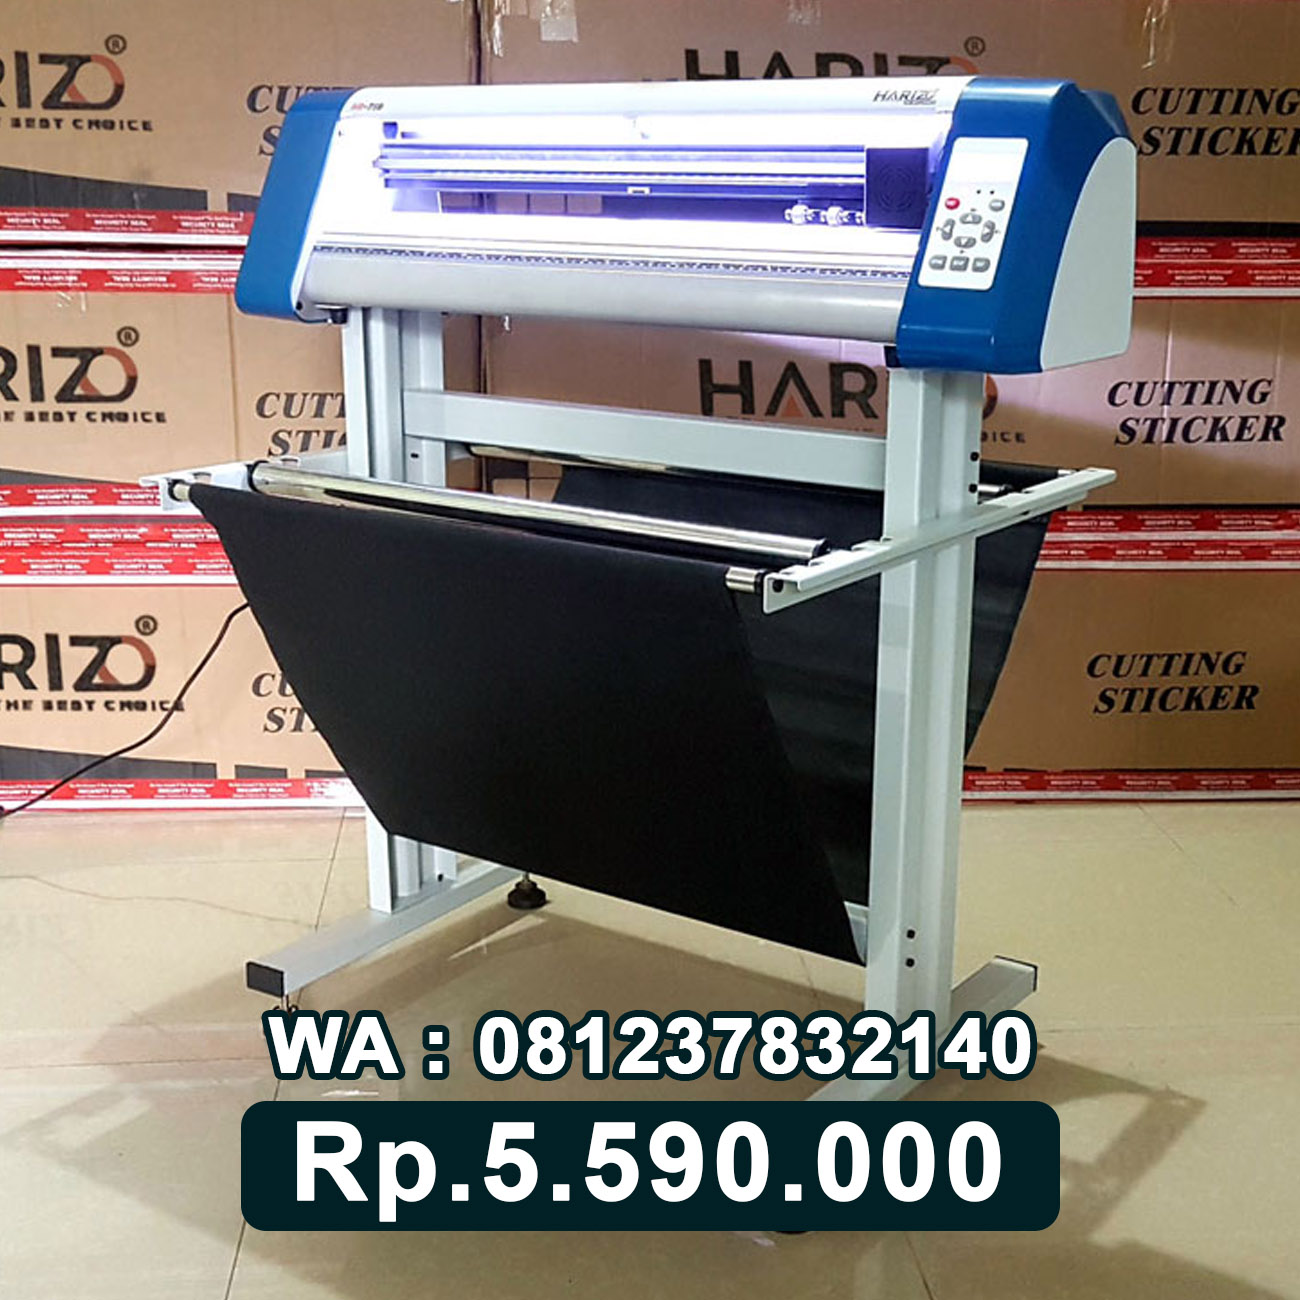 JUAL MESIN CUTTING STICKER HARIZO 720 Larantuka